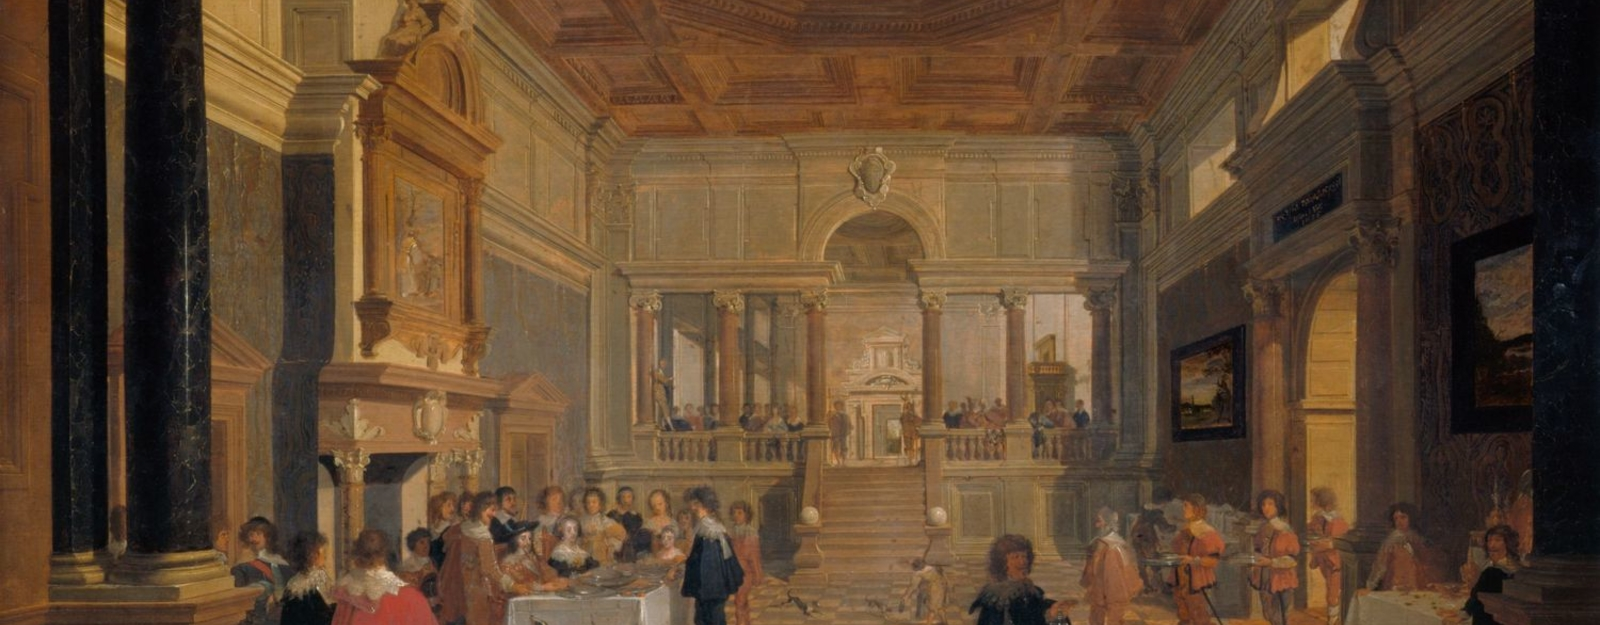 The interior is almost certainly imaginary (as opposed to being specifically of Whitehall Palace), although the event itself could have been witnessed by Houckgeest, who seems to have been at the English court sometime during the mid-1630s. Charles I owne